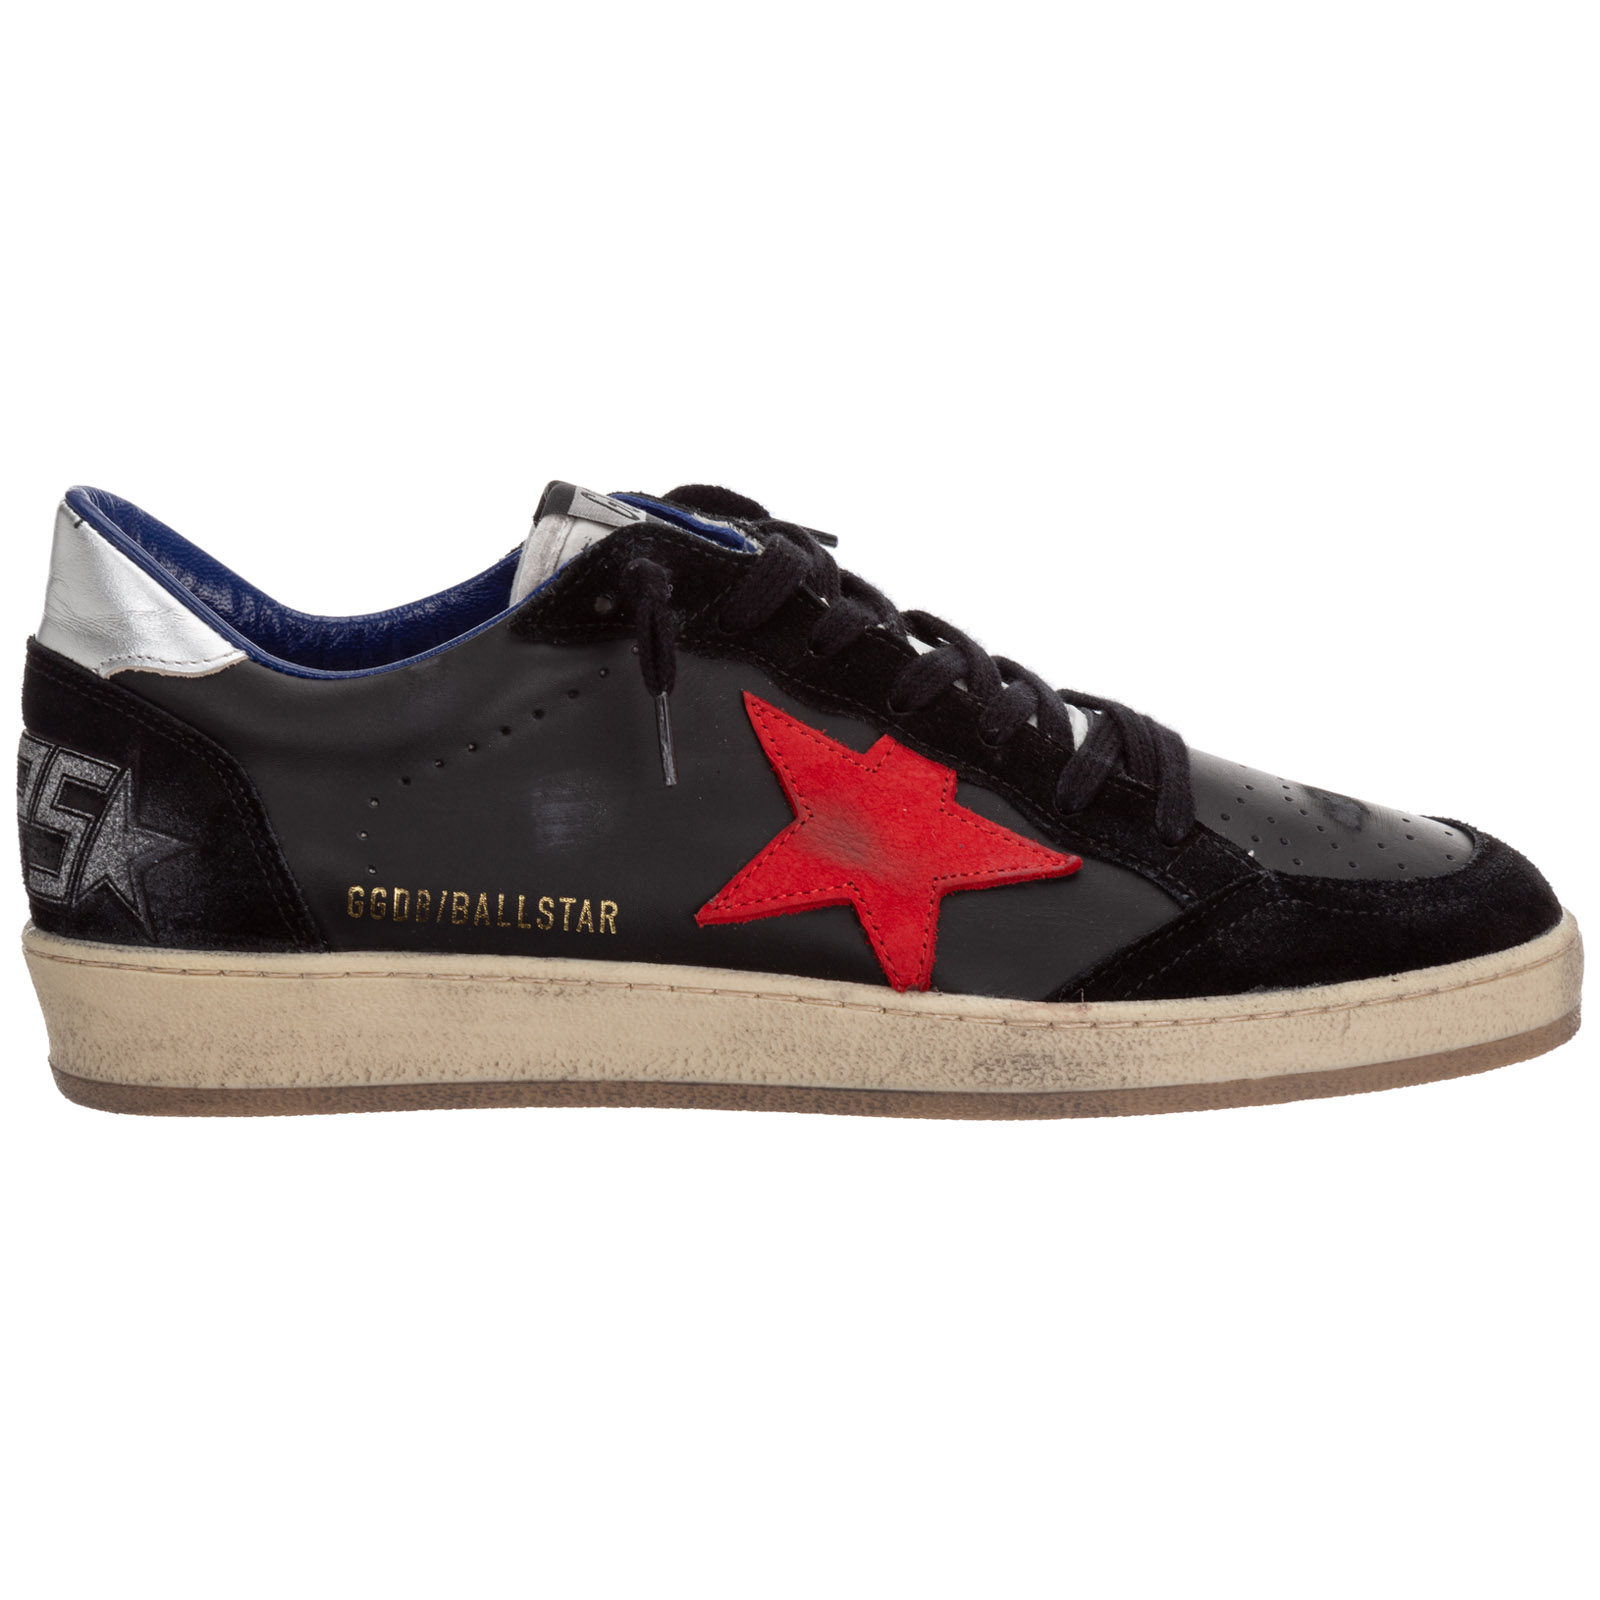 GOLDEN GOOSE MEN'S SHOES LEATHER TRAINERS SNEAKERS BALLSTAR